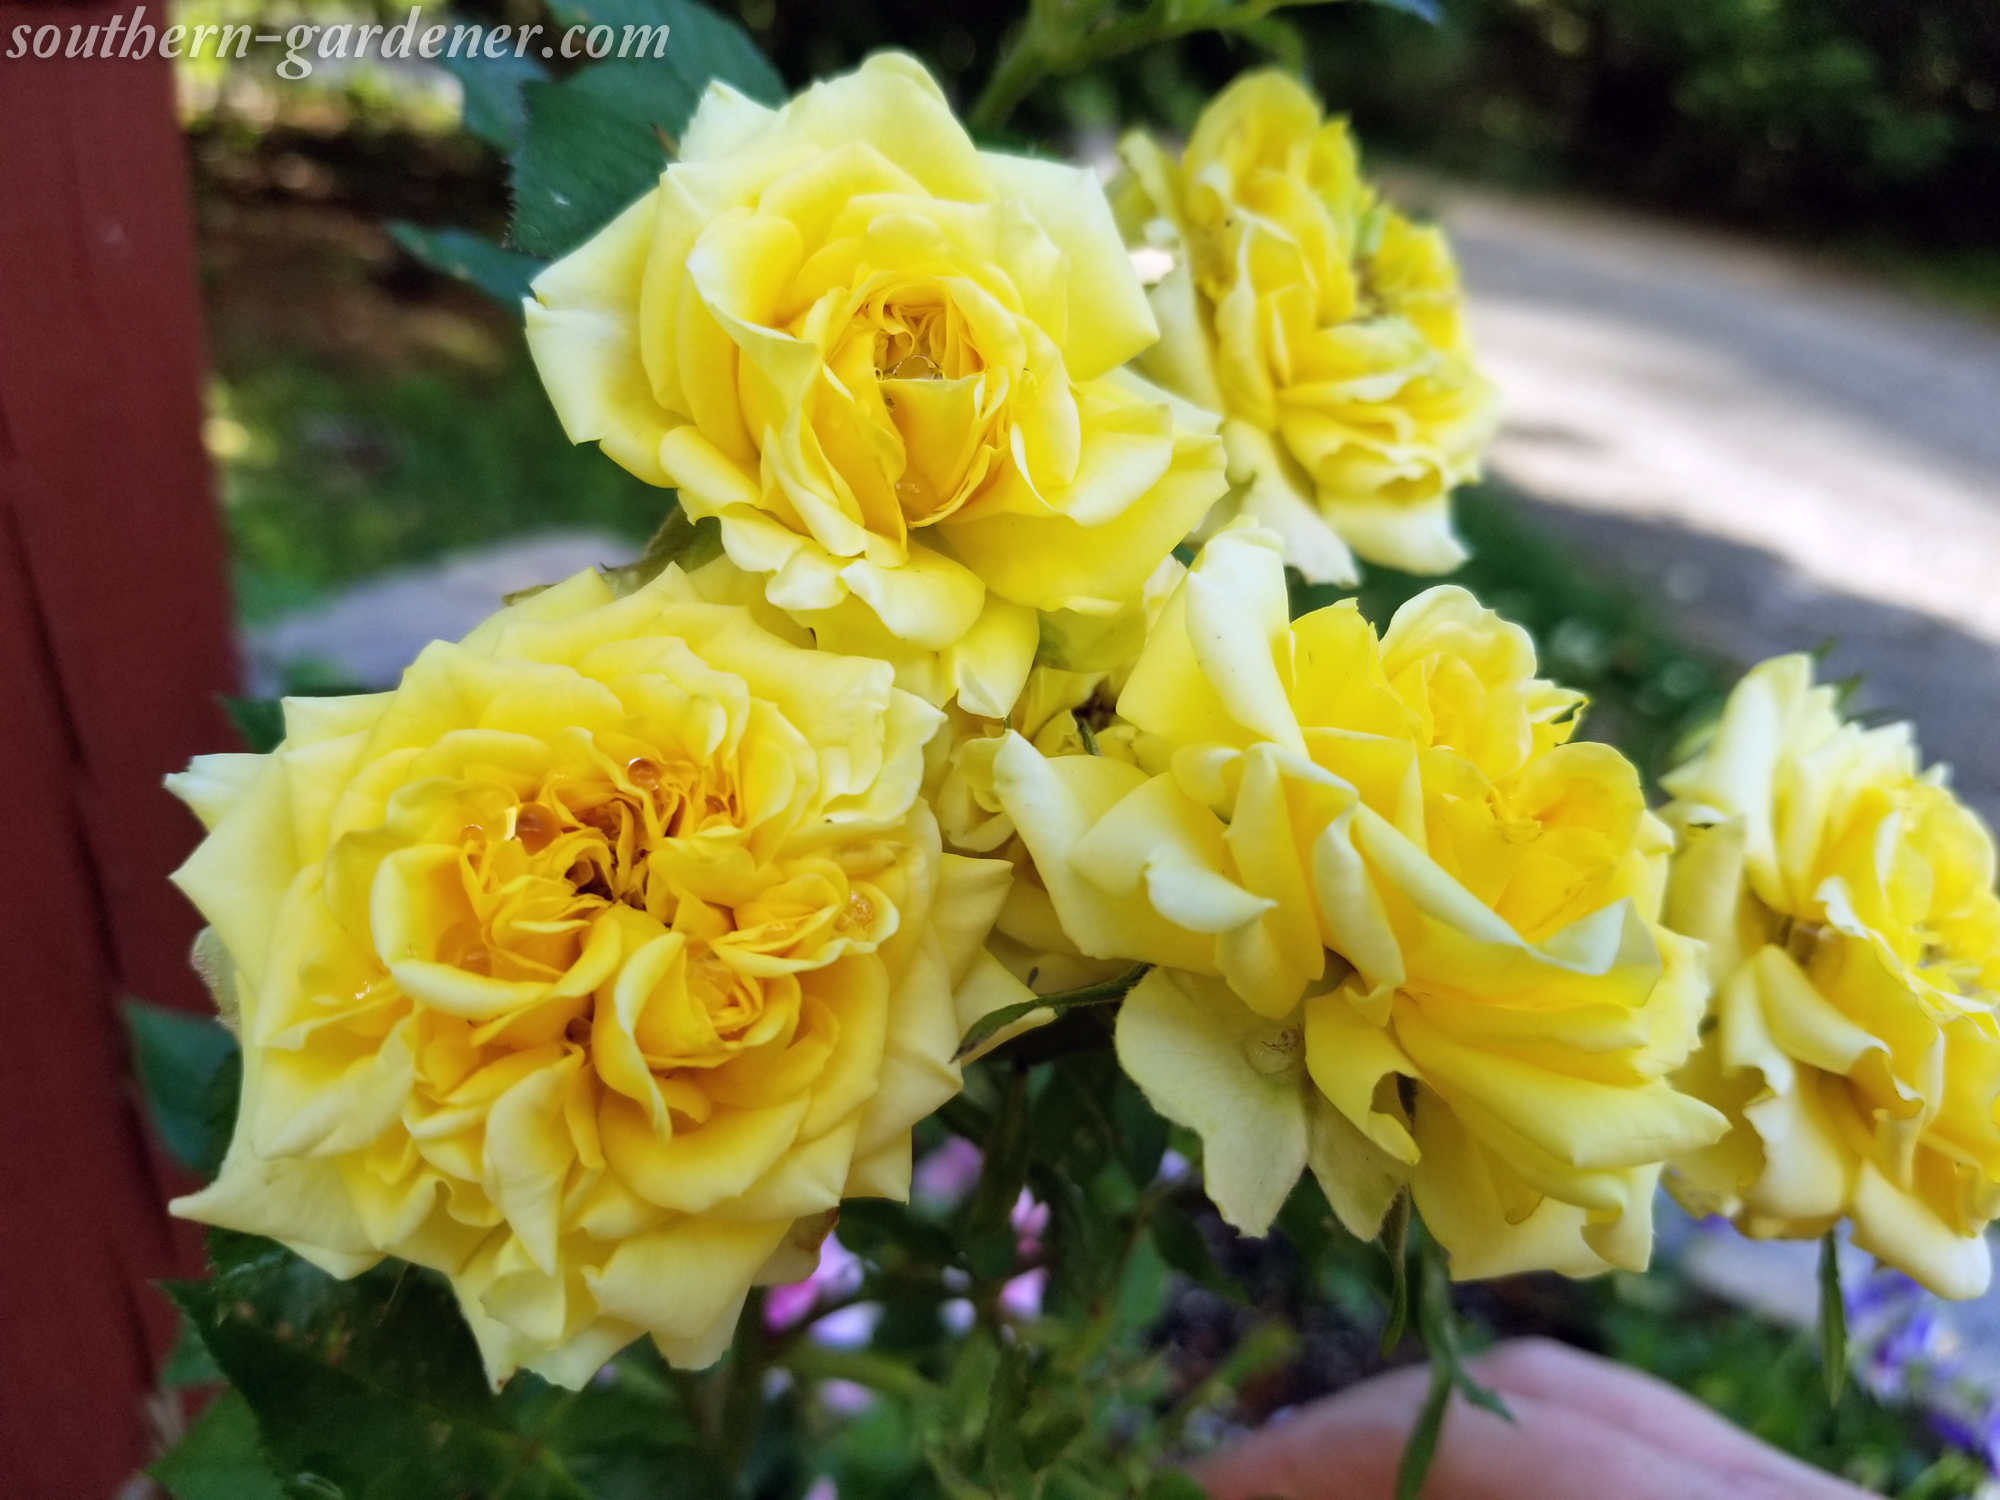 miniature yellow rose bush outside